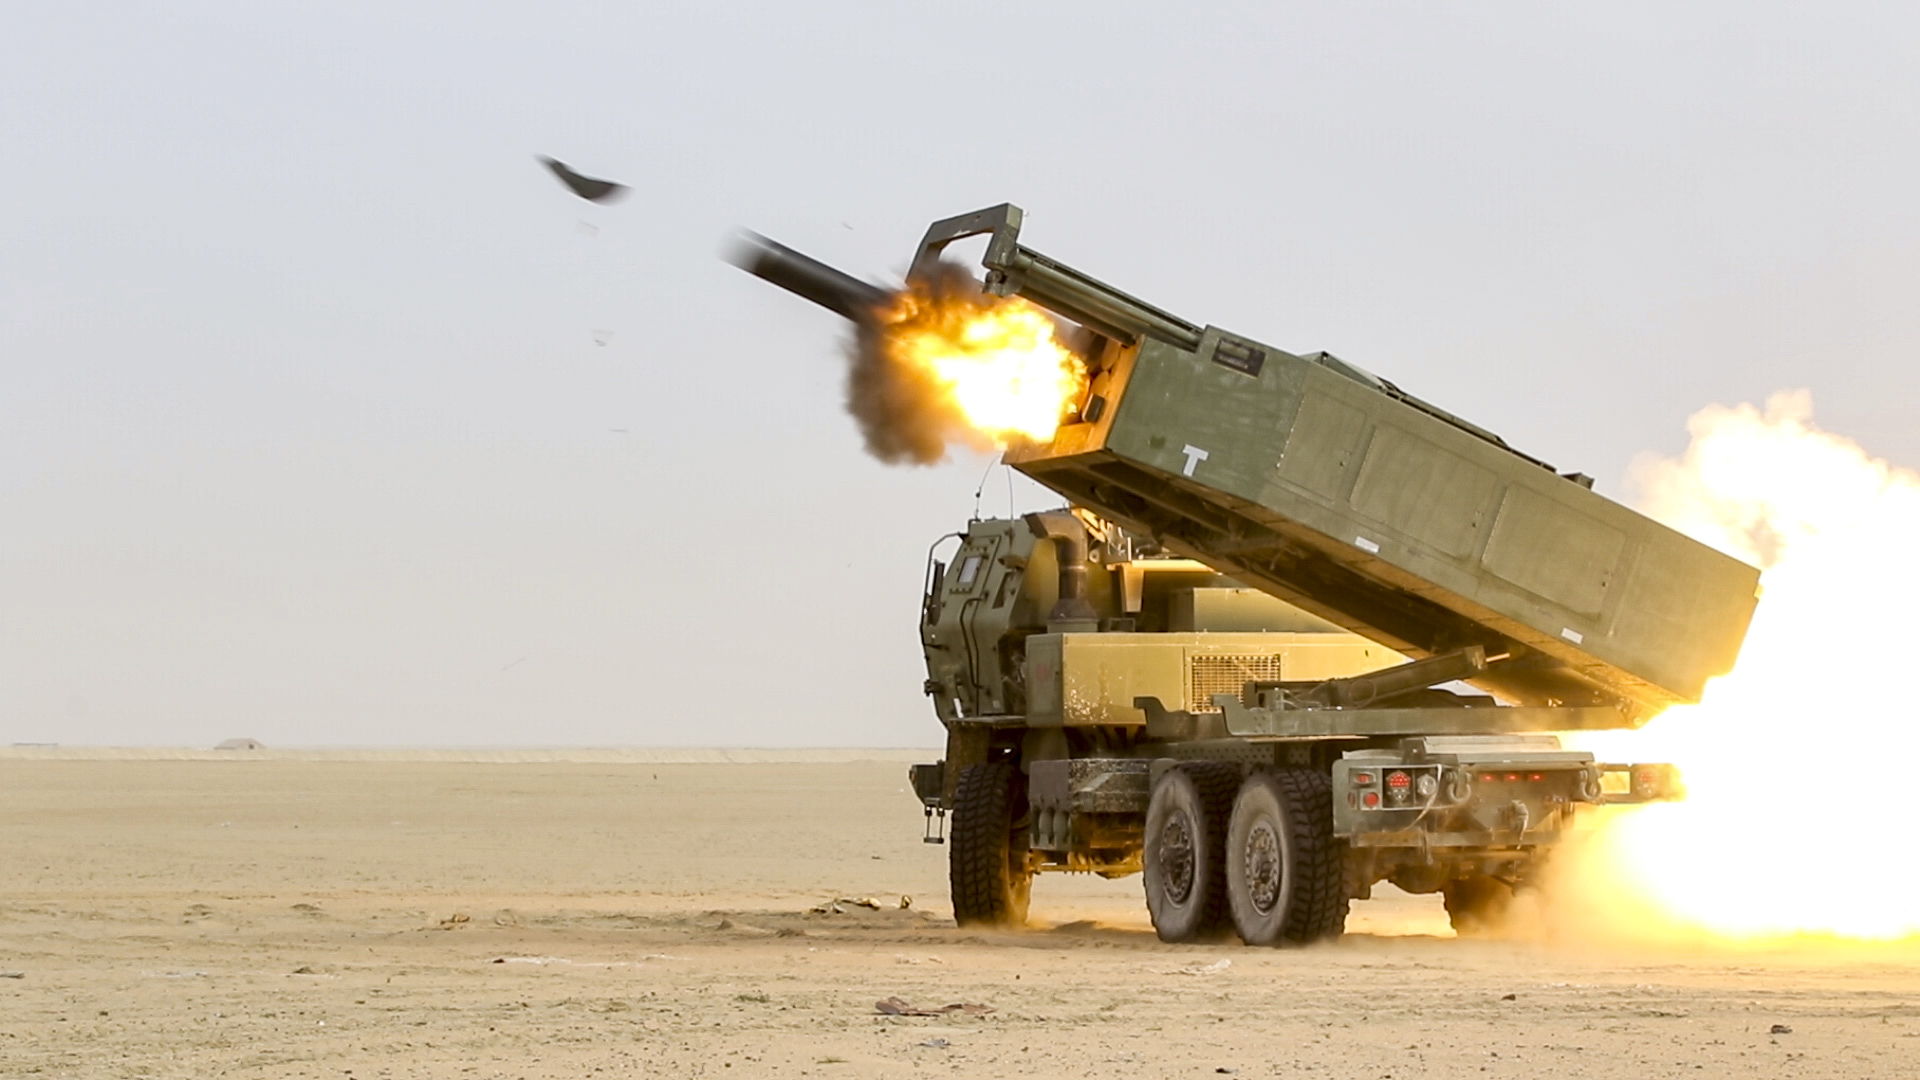 Soldiers assigned to the 65th Field Artillery Brigade fire a High Mobility Artillery Rocket System (HIMARS) during a joint live-fire exercise with the Kuwait Land Forces, near Camp Buehring, Kuwait. (Sgt. Bill Boecker/Army)